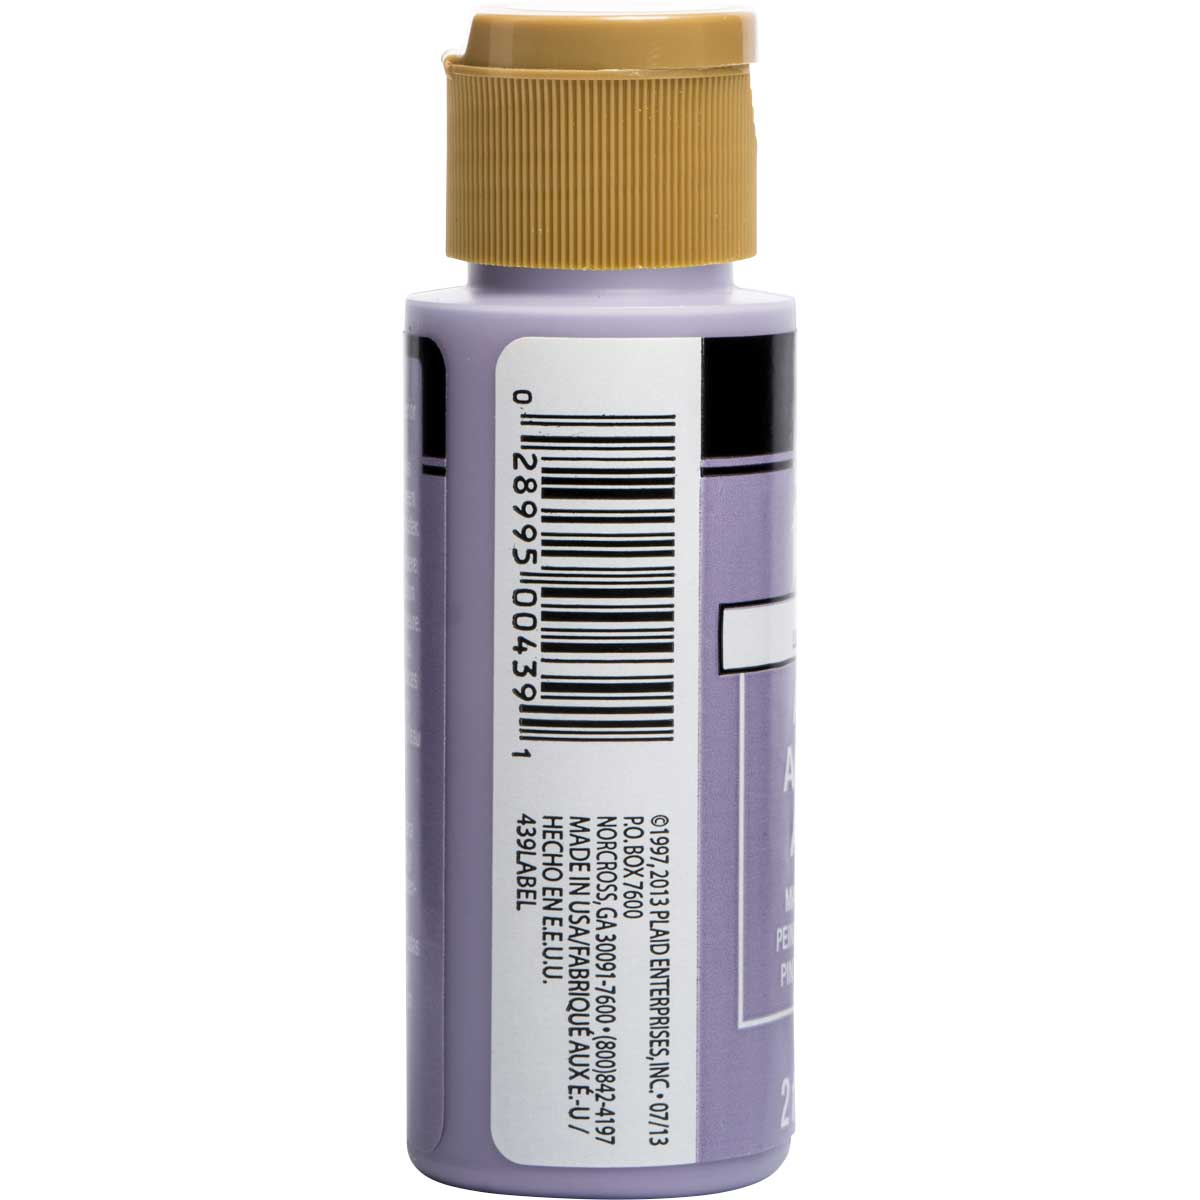 FolkArt ® Acrylic Colors - Purple Lilac, 2 oz.